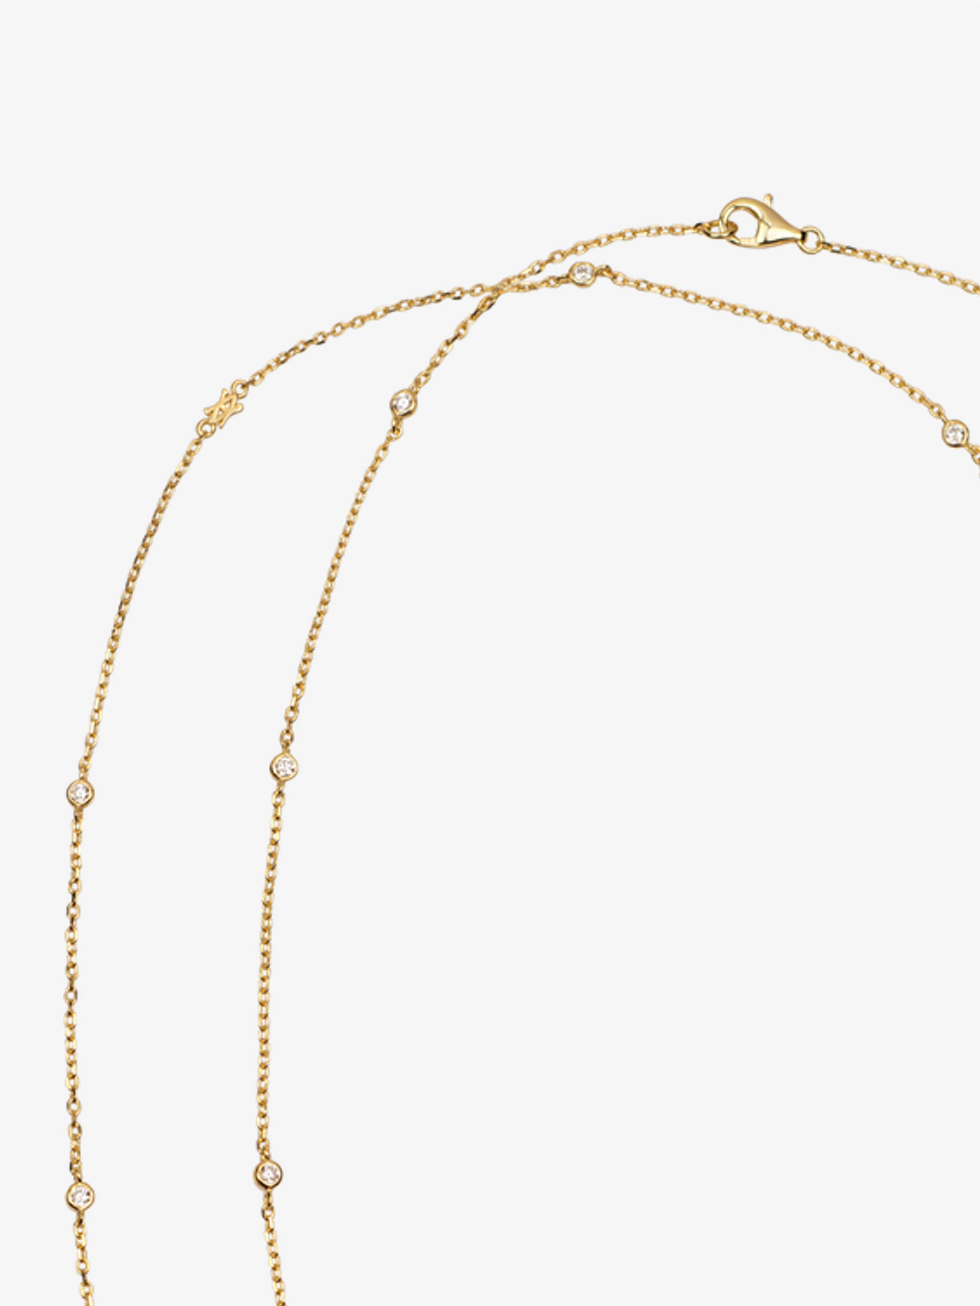 Collar long cz gold 4